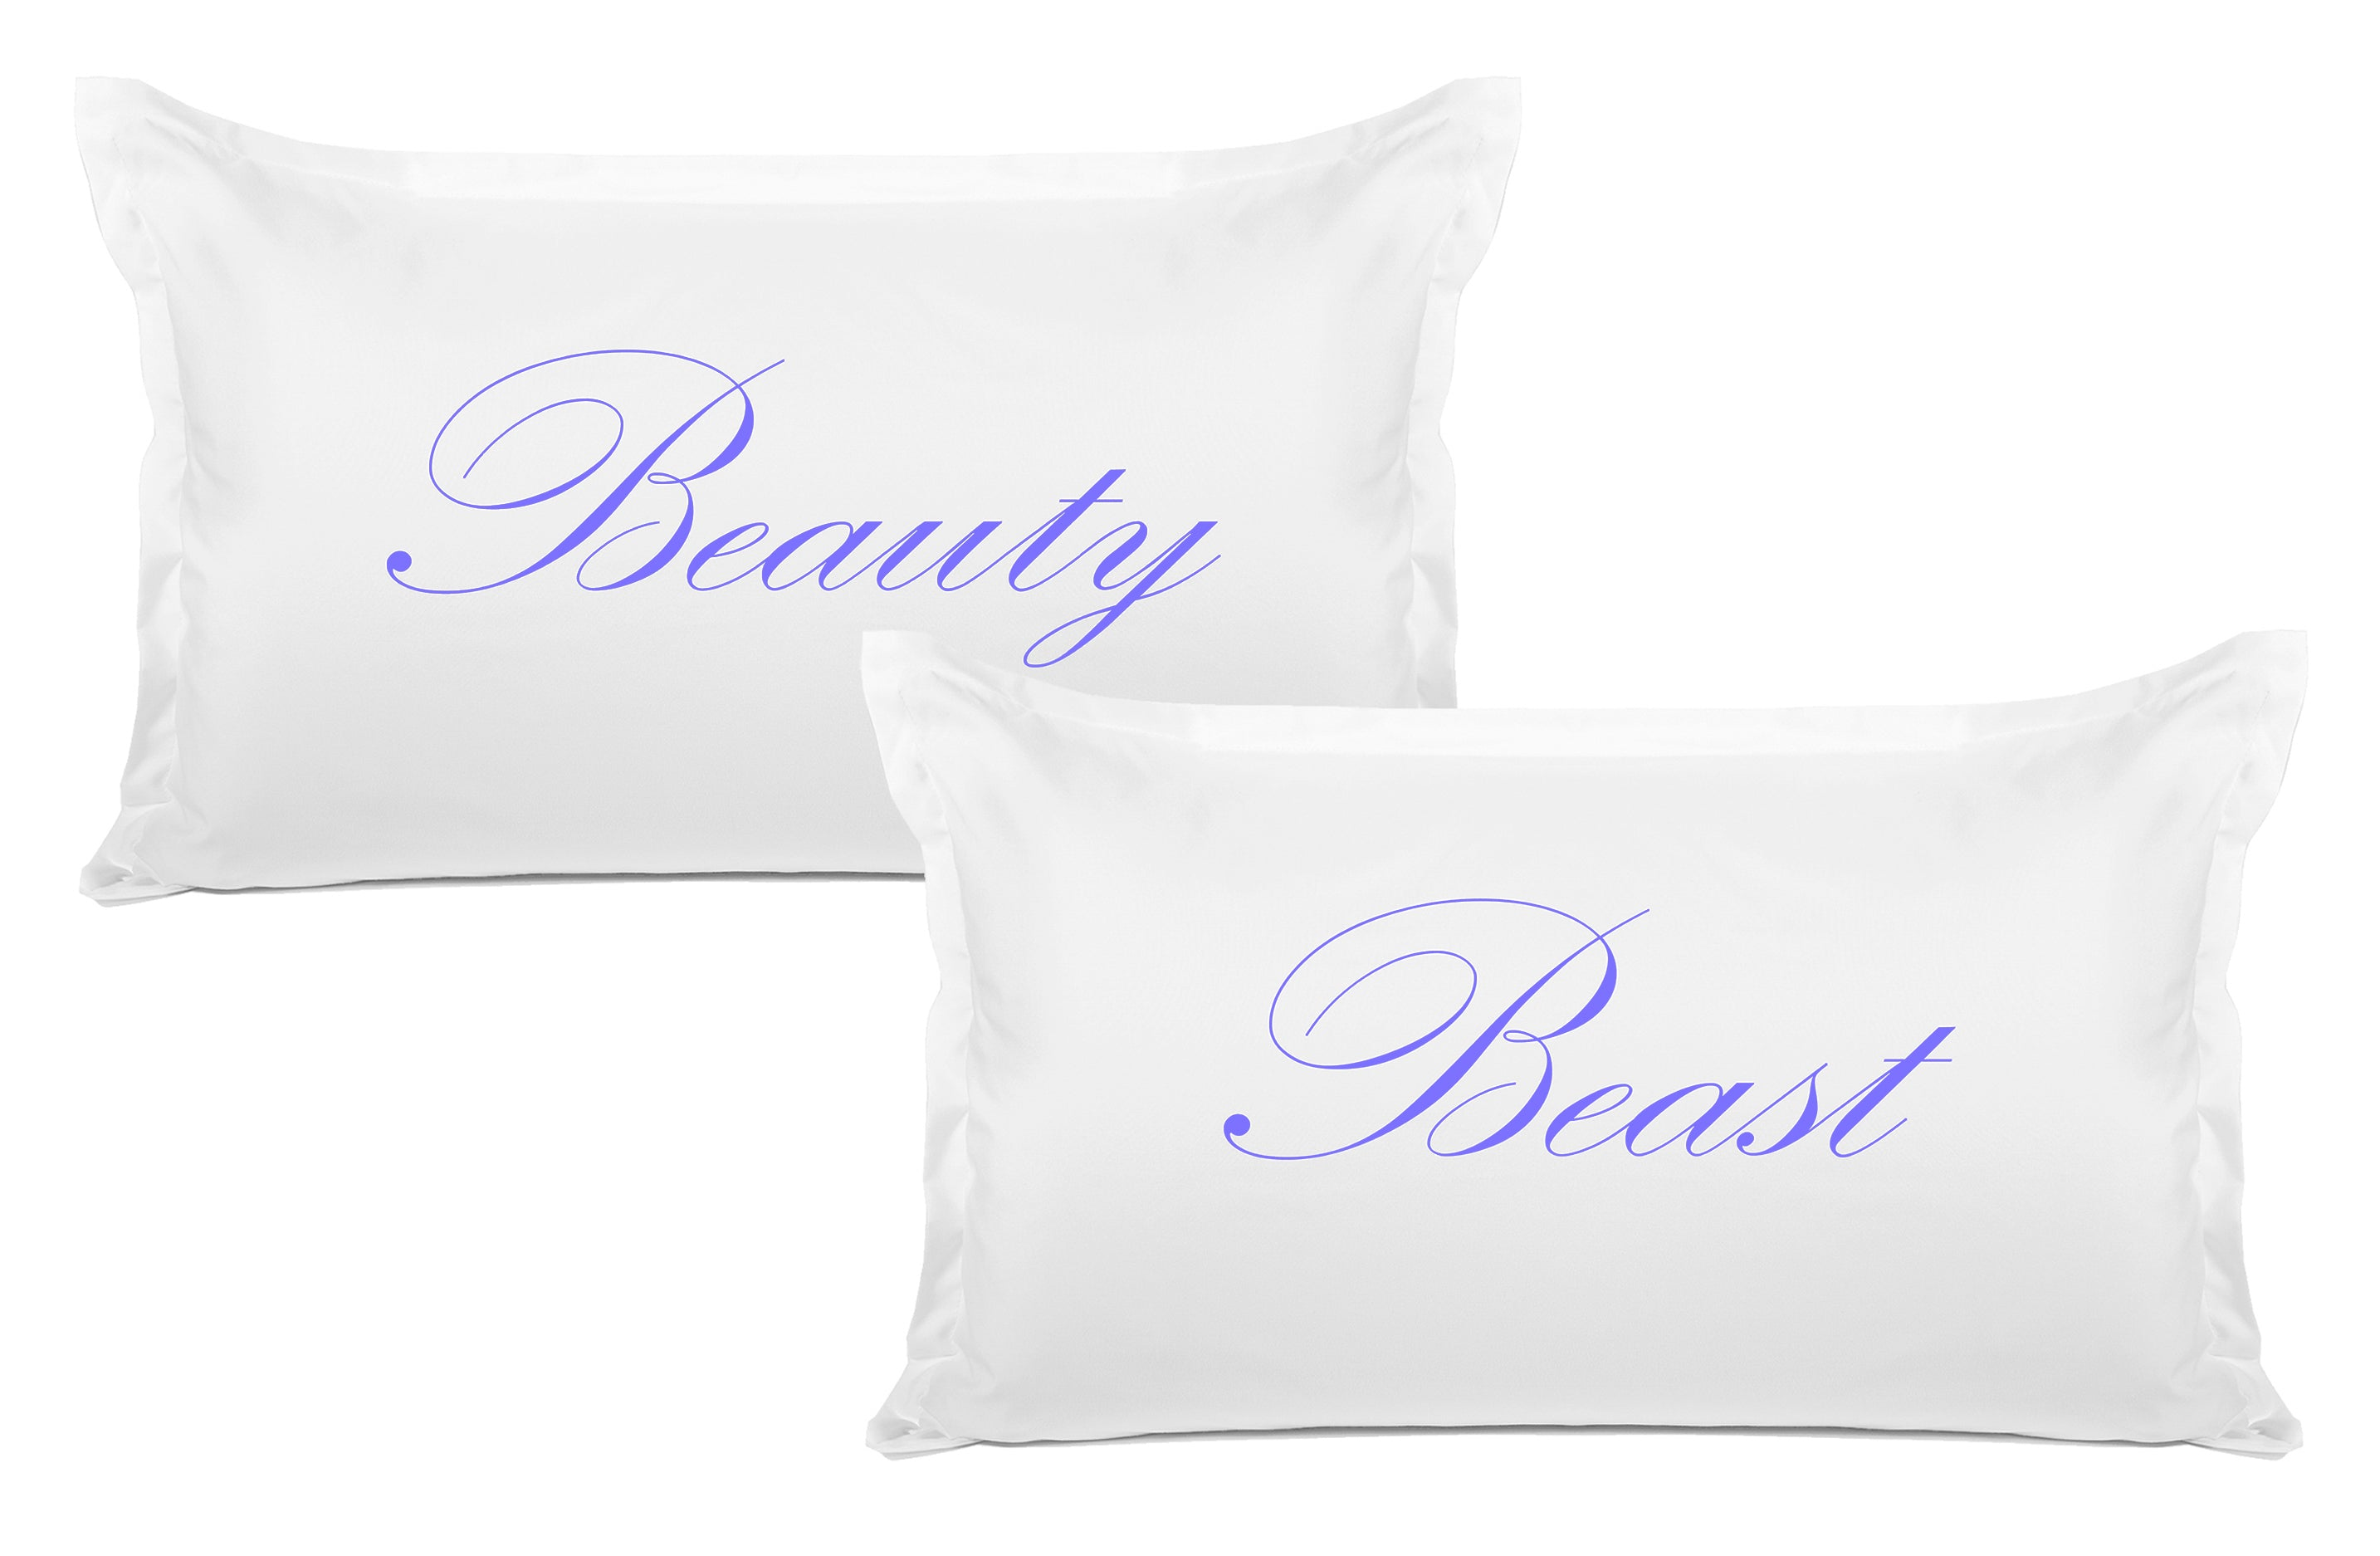 Beauty Beast pillow sets Di Lewis bedroom decor